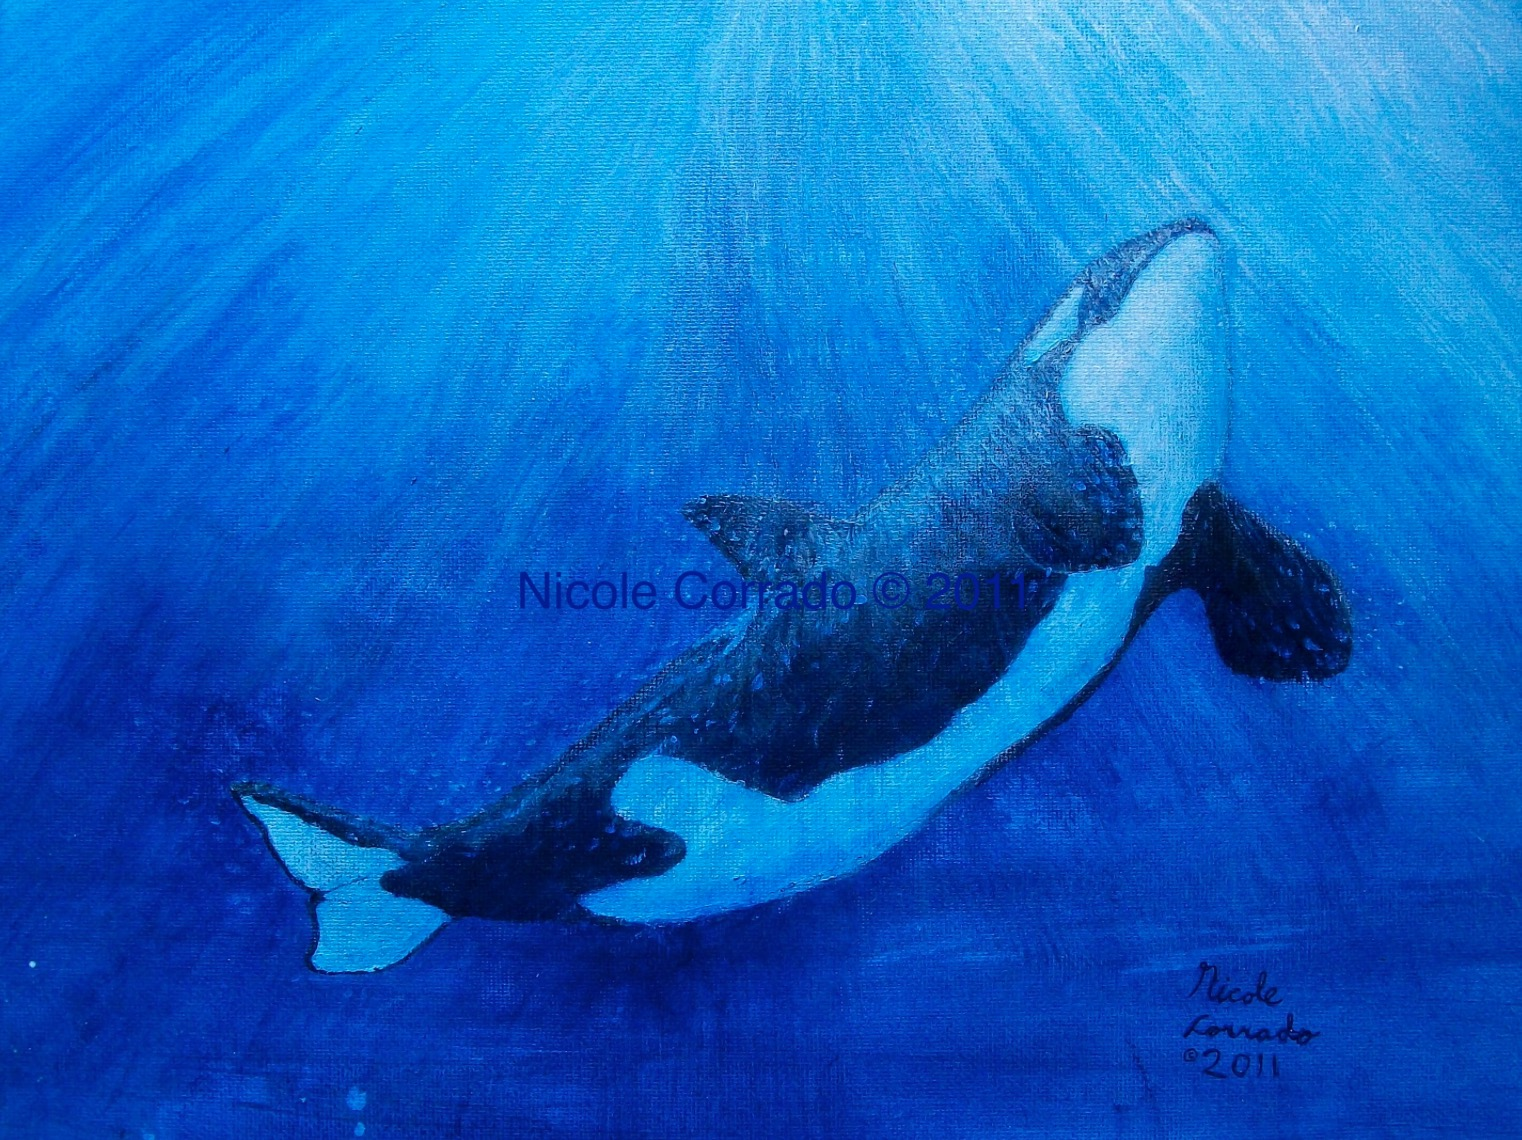 """The """"Orca"""" portrait shows an orca painted in acrylic swimming toward the surface. The water is dark blue, with light blue and white sun rays shining down."""